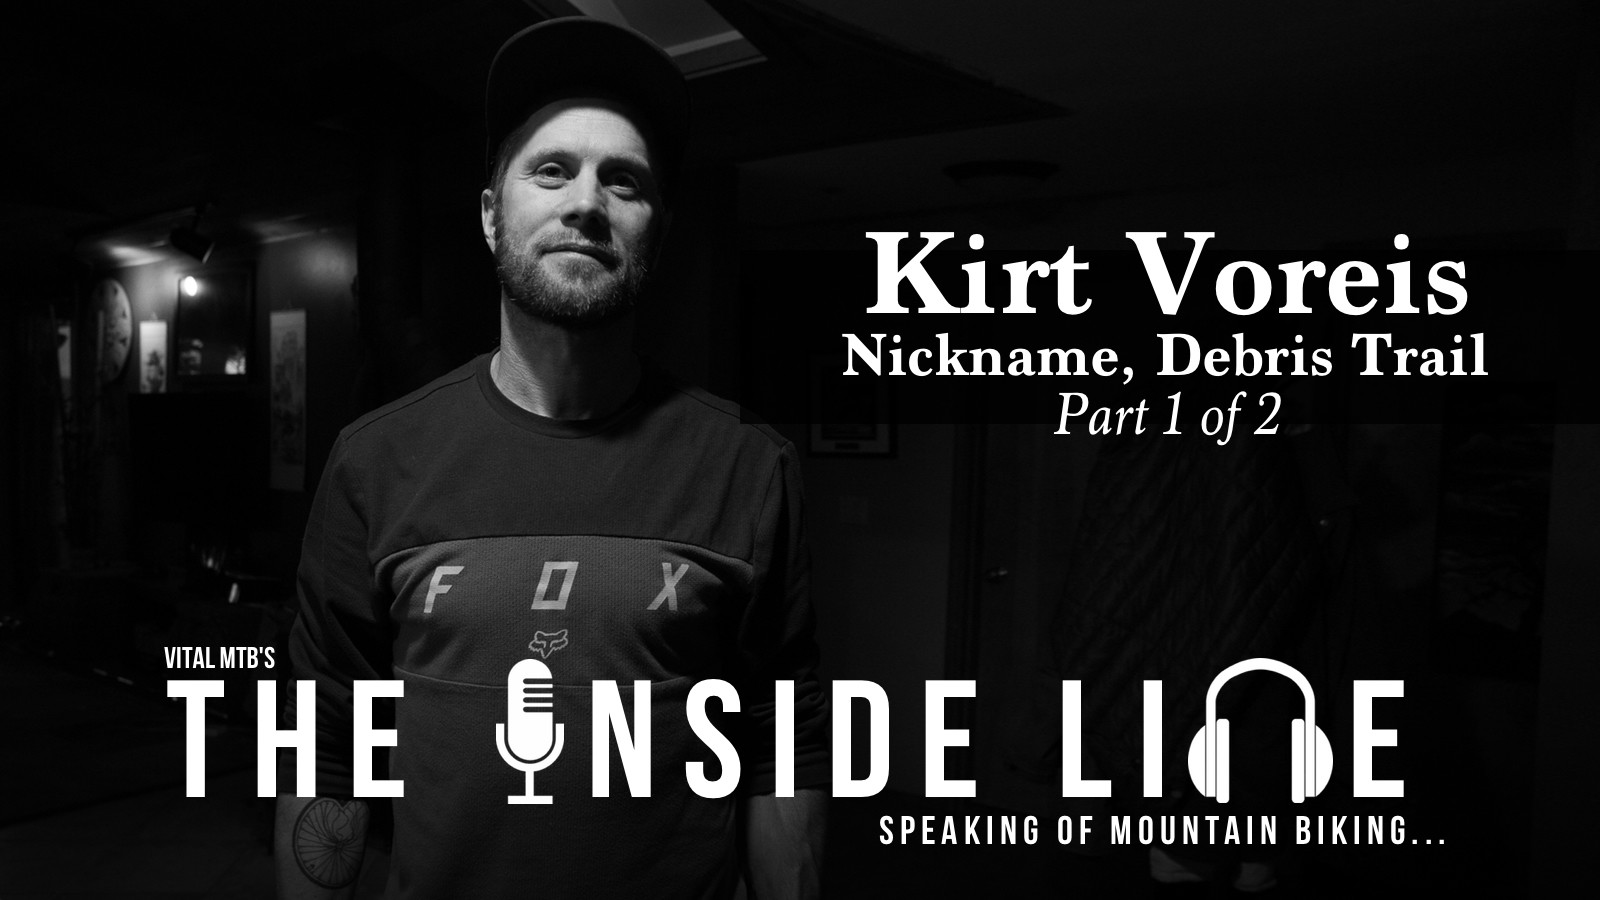 Nickname, Debris Trail - Kirt Voreis on The Inside Line, Part 1 of 2